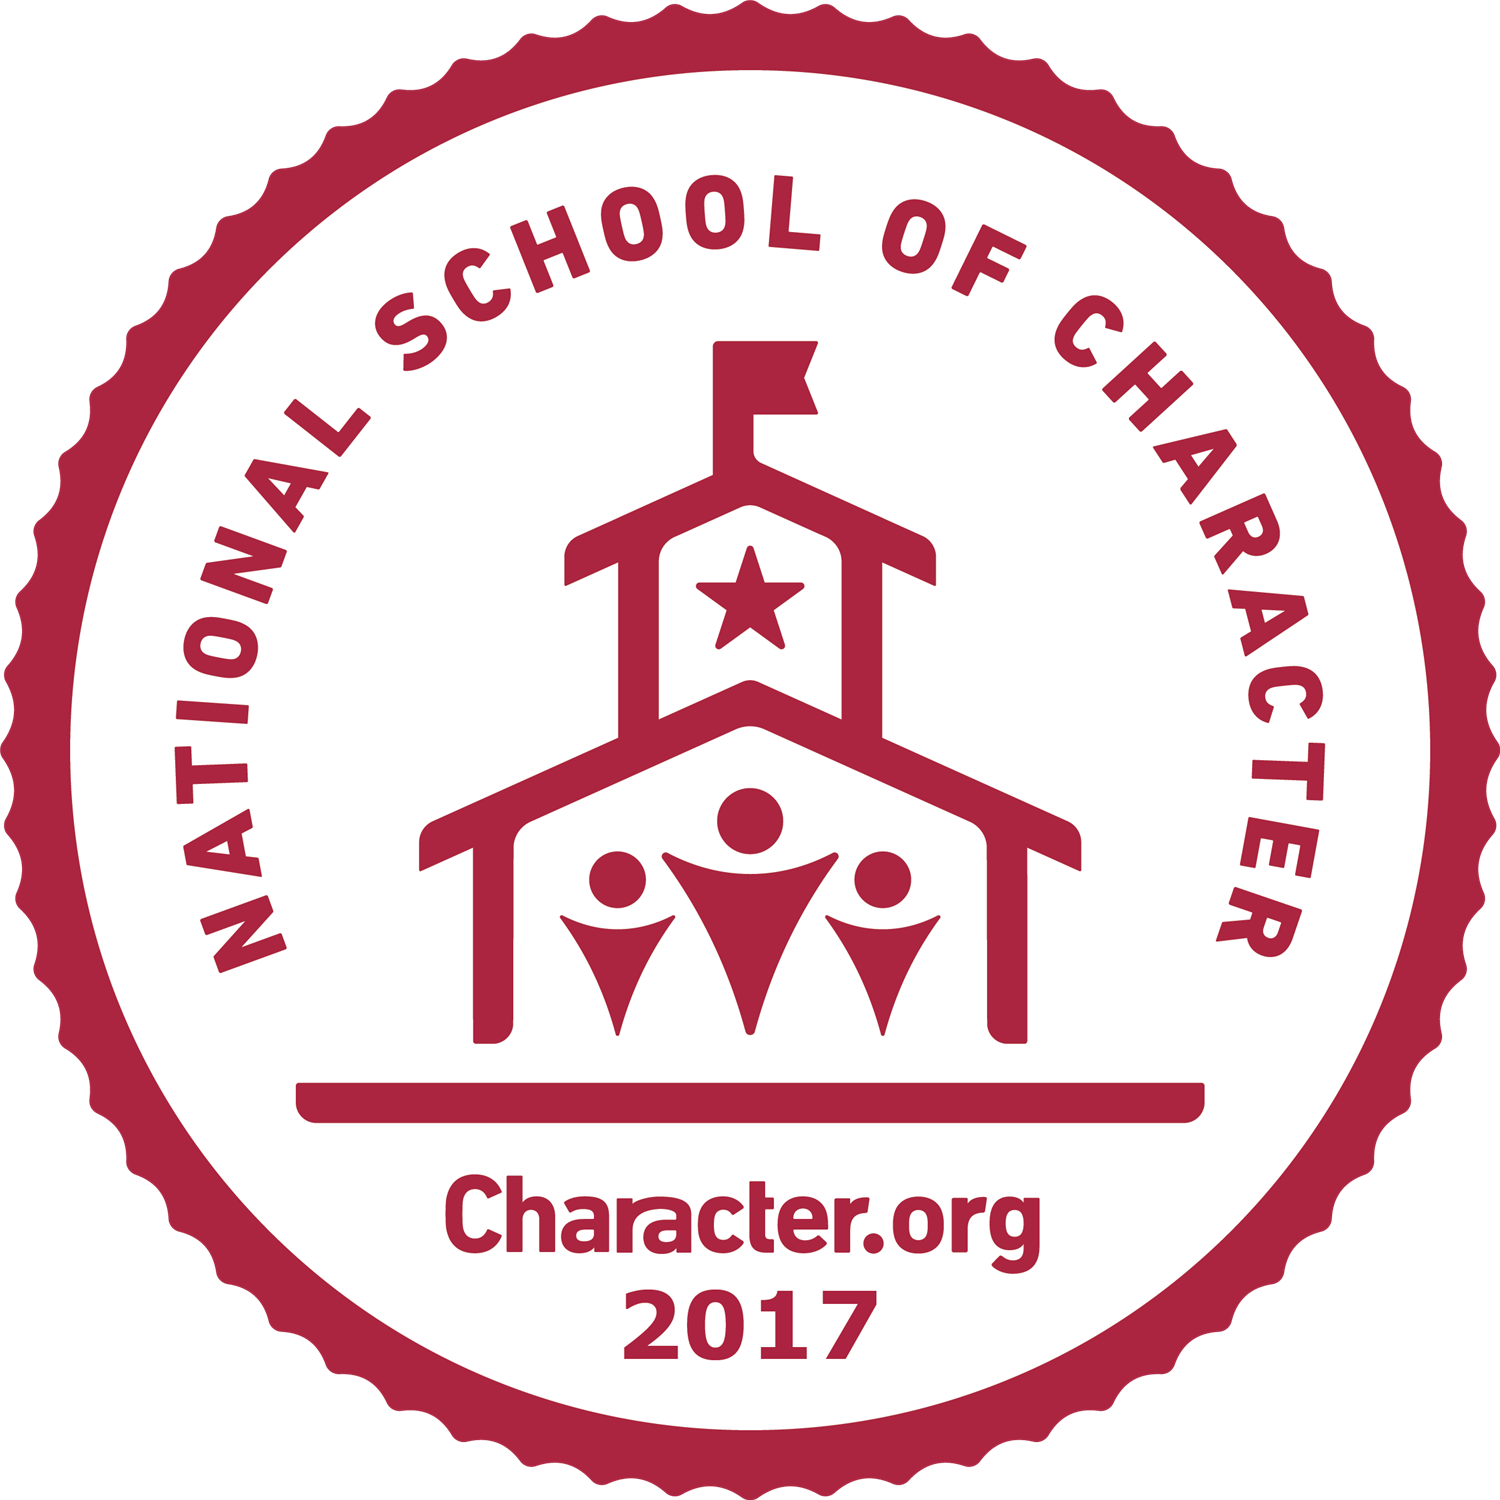 National School of Character character.org 2017